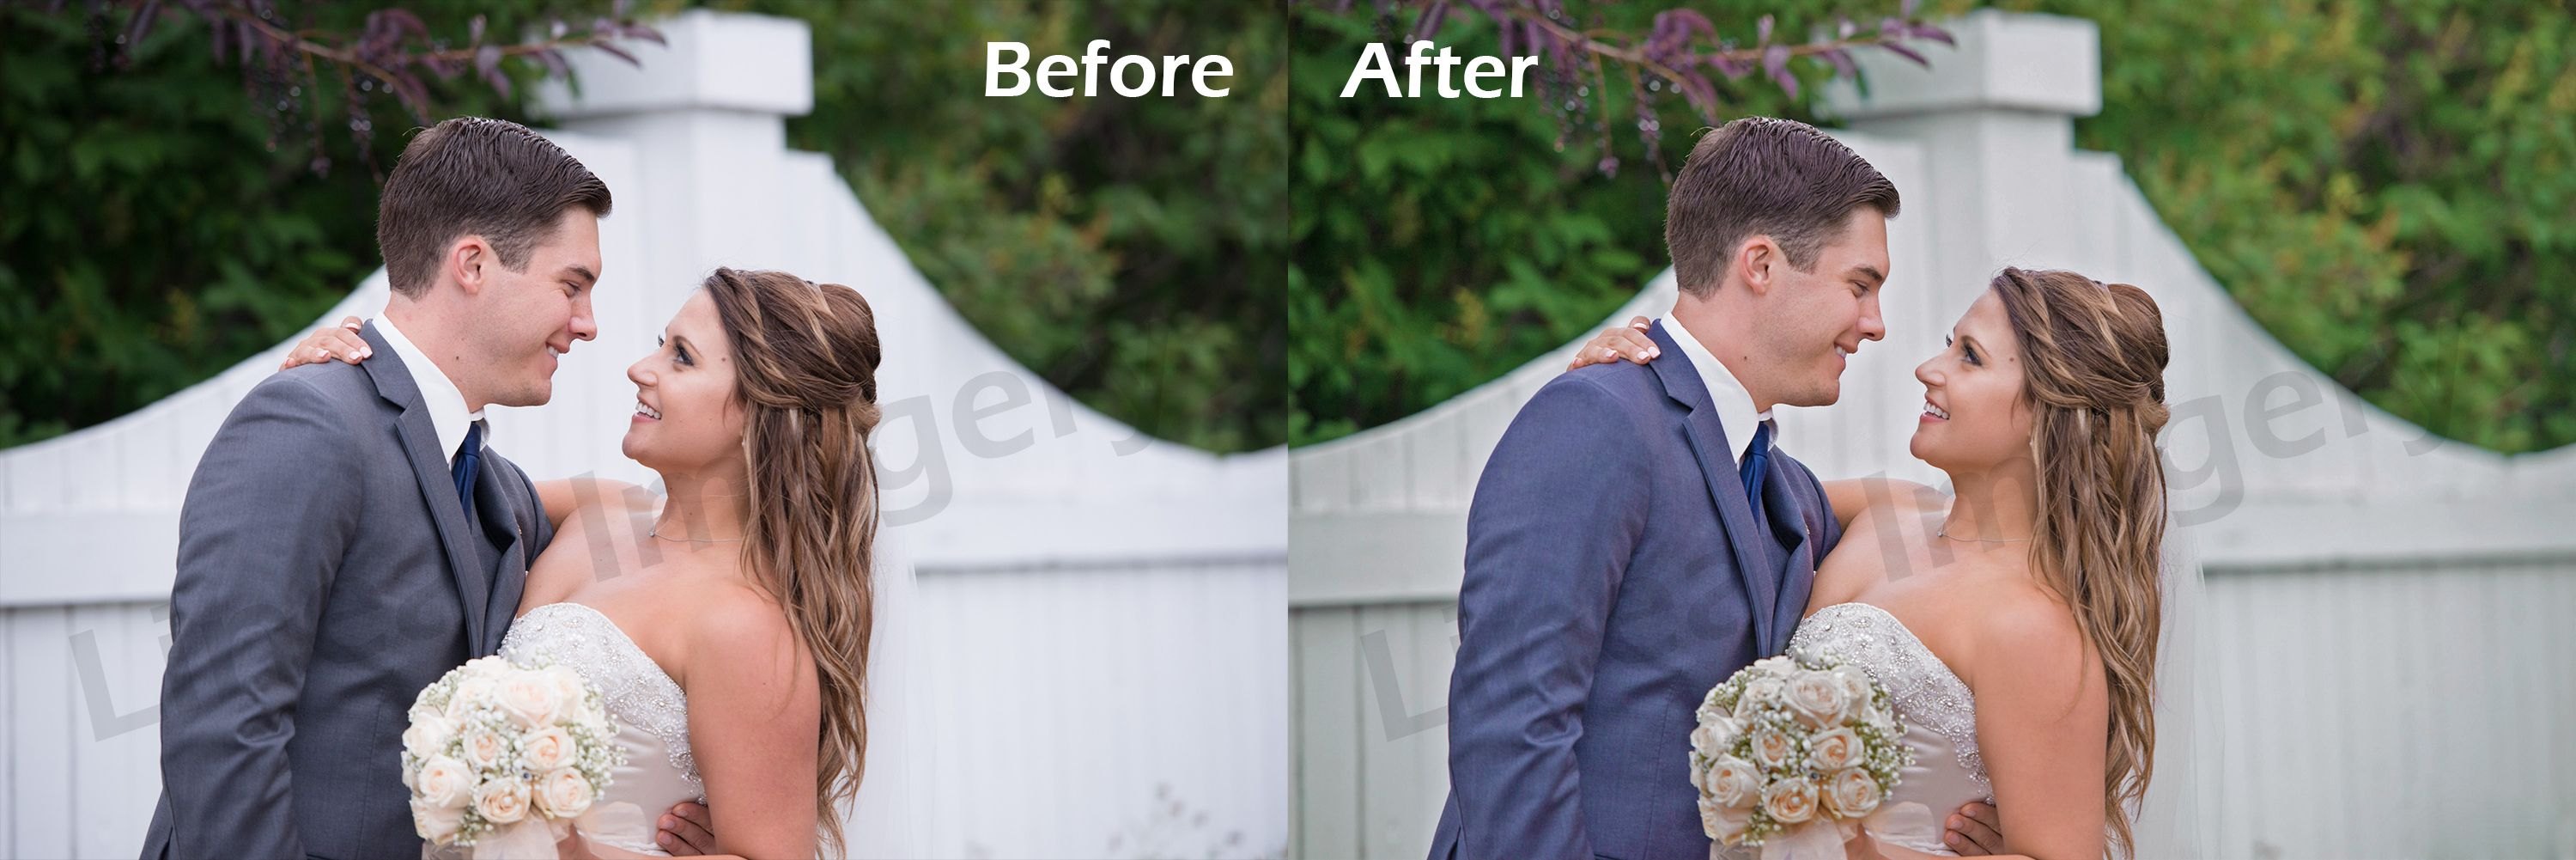 Wedding Images Retouching Editing Company In India Linear Imagery